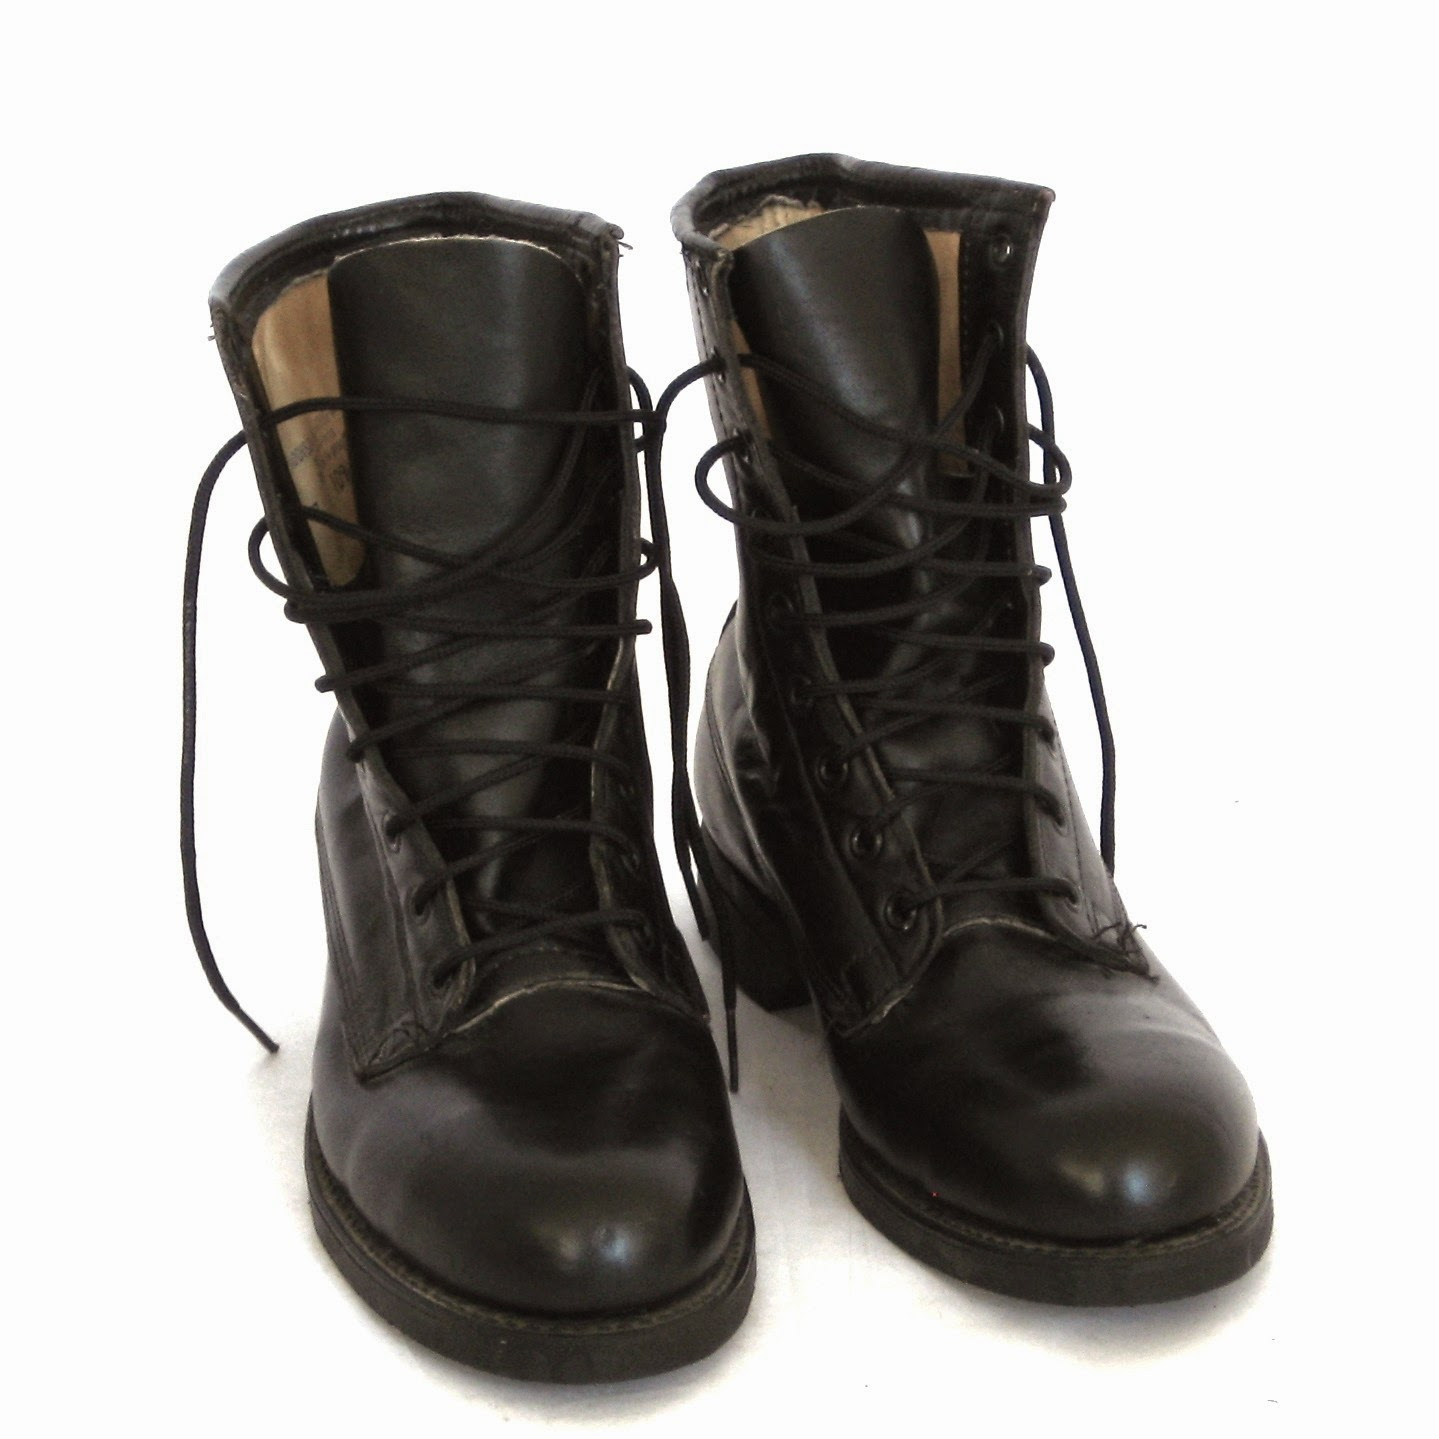 Black Combat Boots for Men | Latest Boots Styles